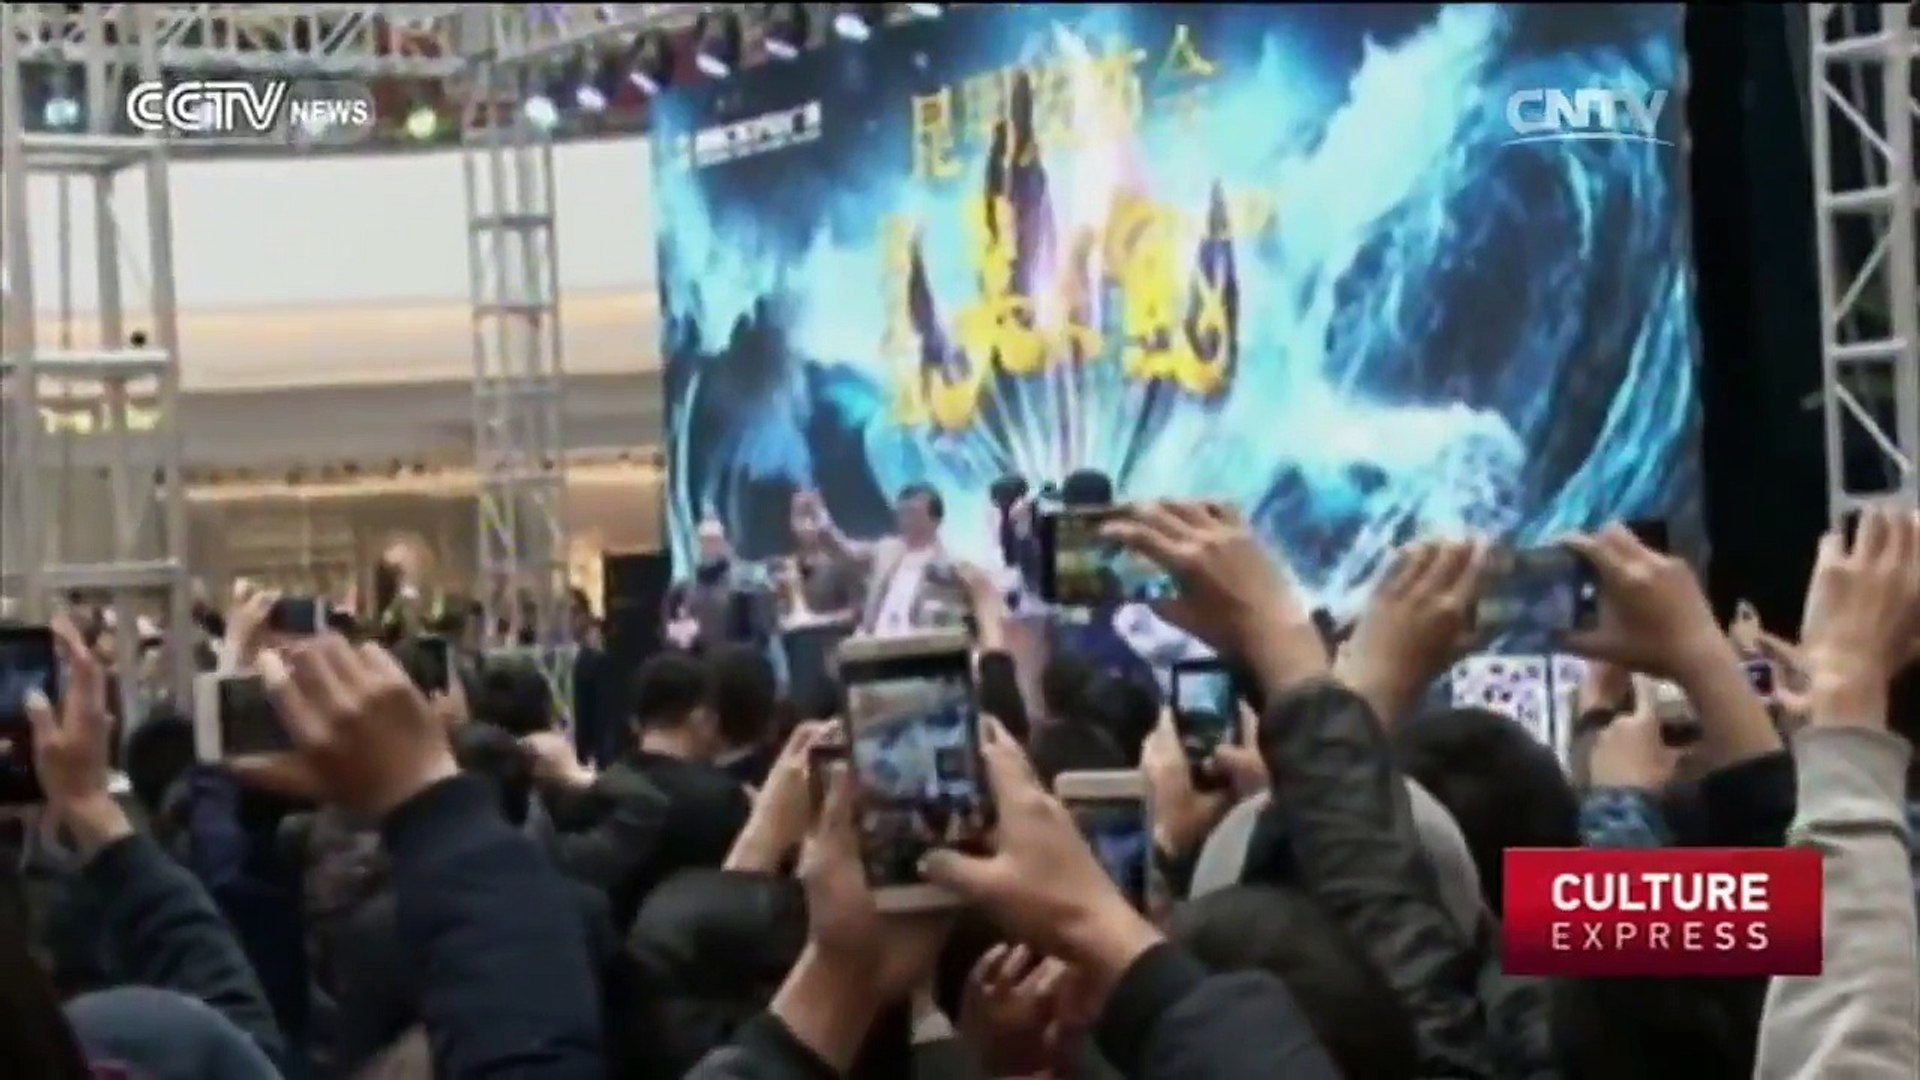 China's Entertainment Industry: Movies, on-line entertainment drive growth